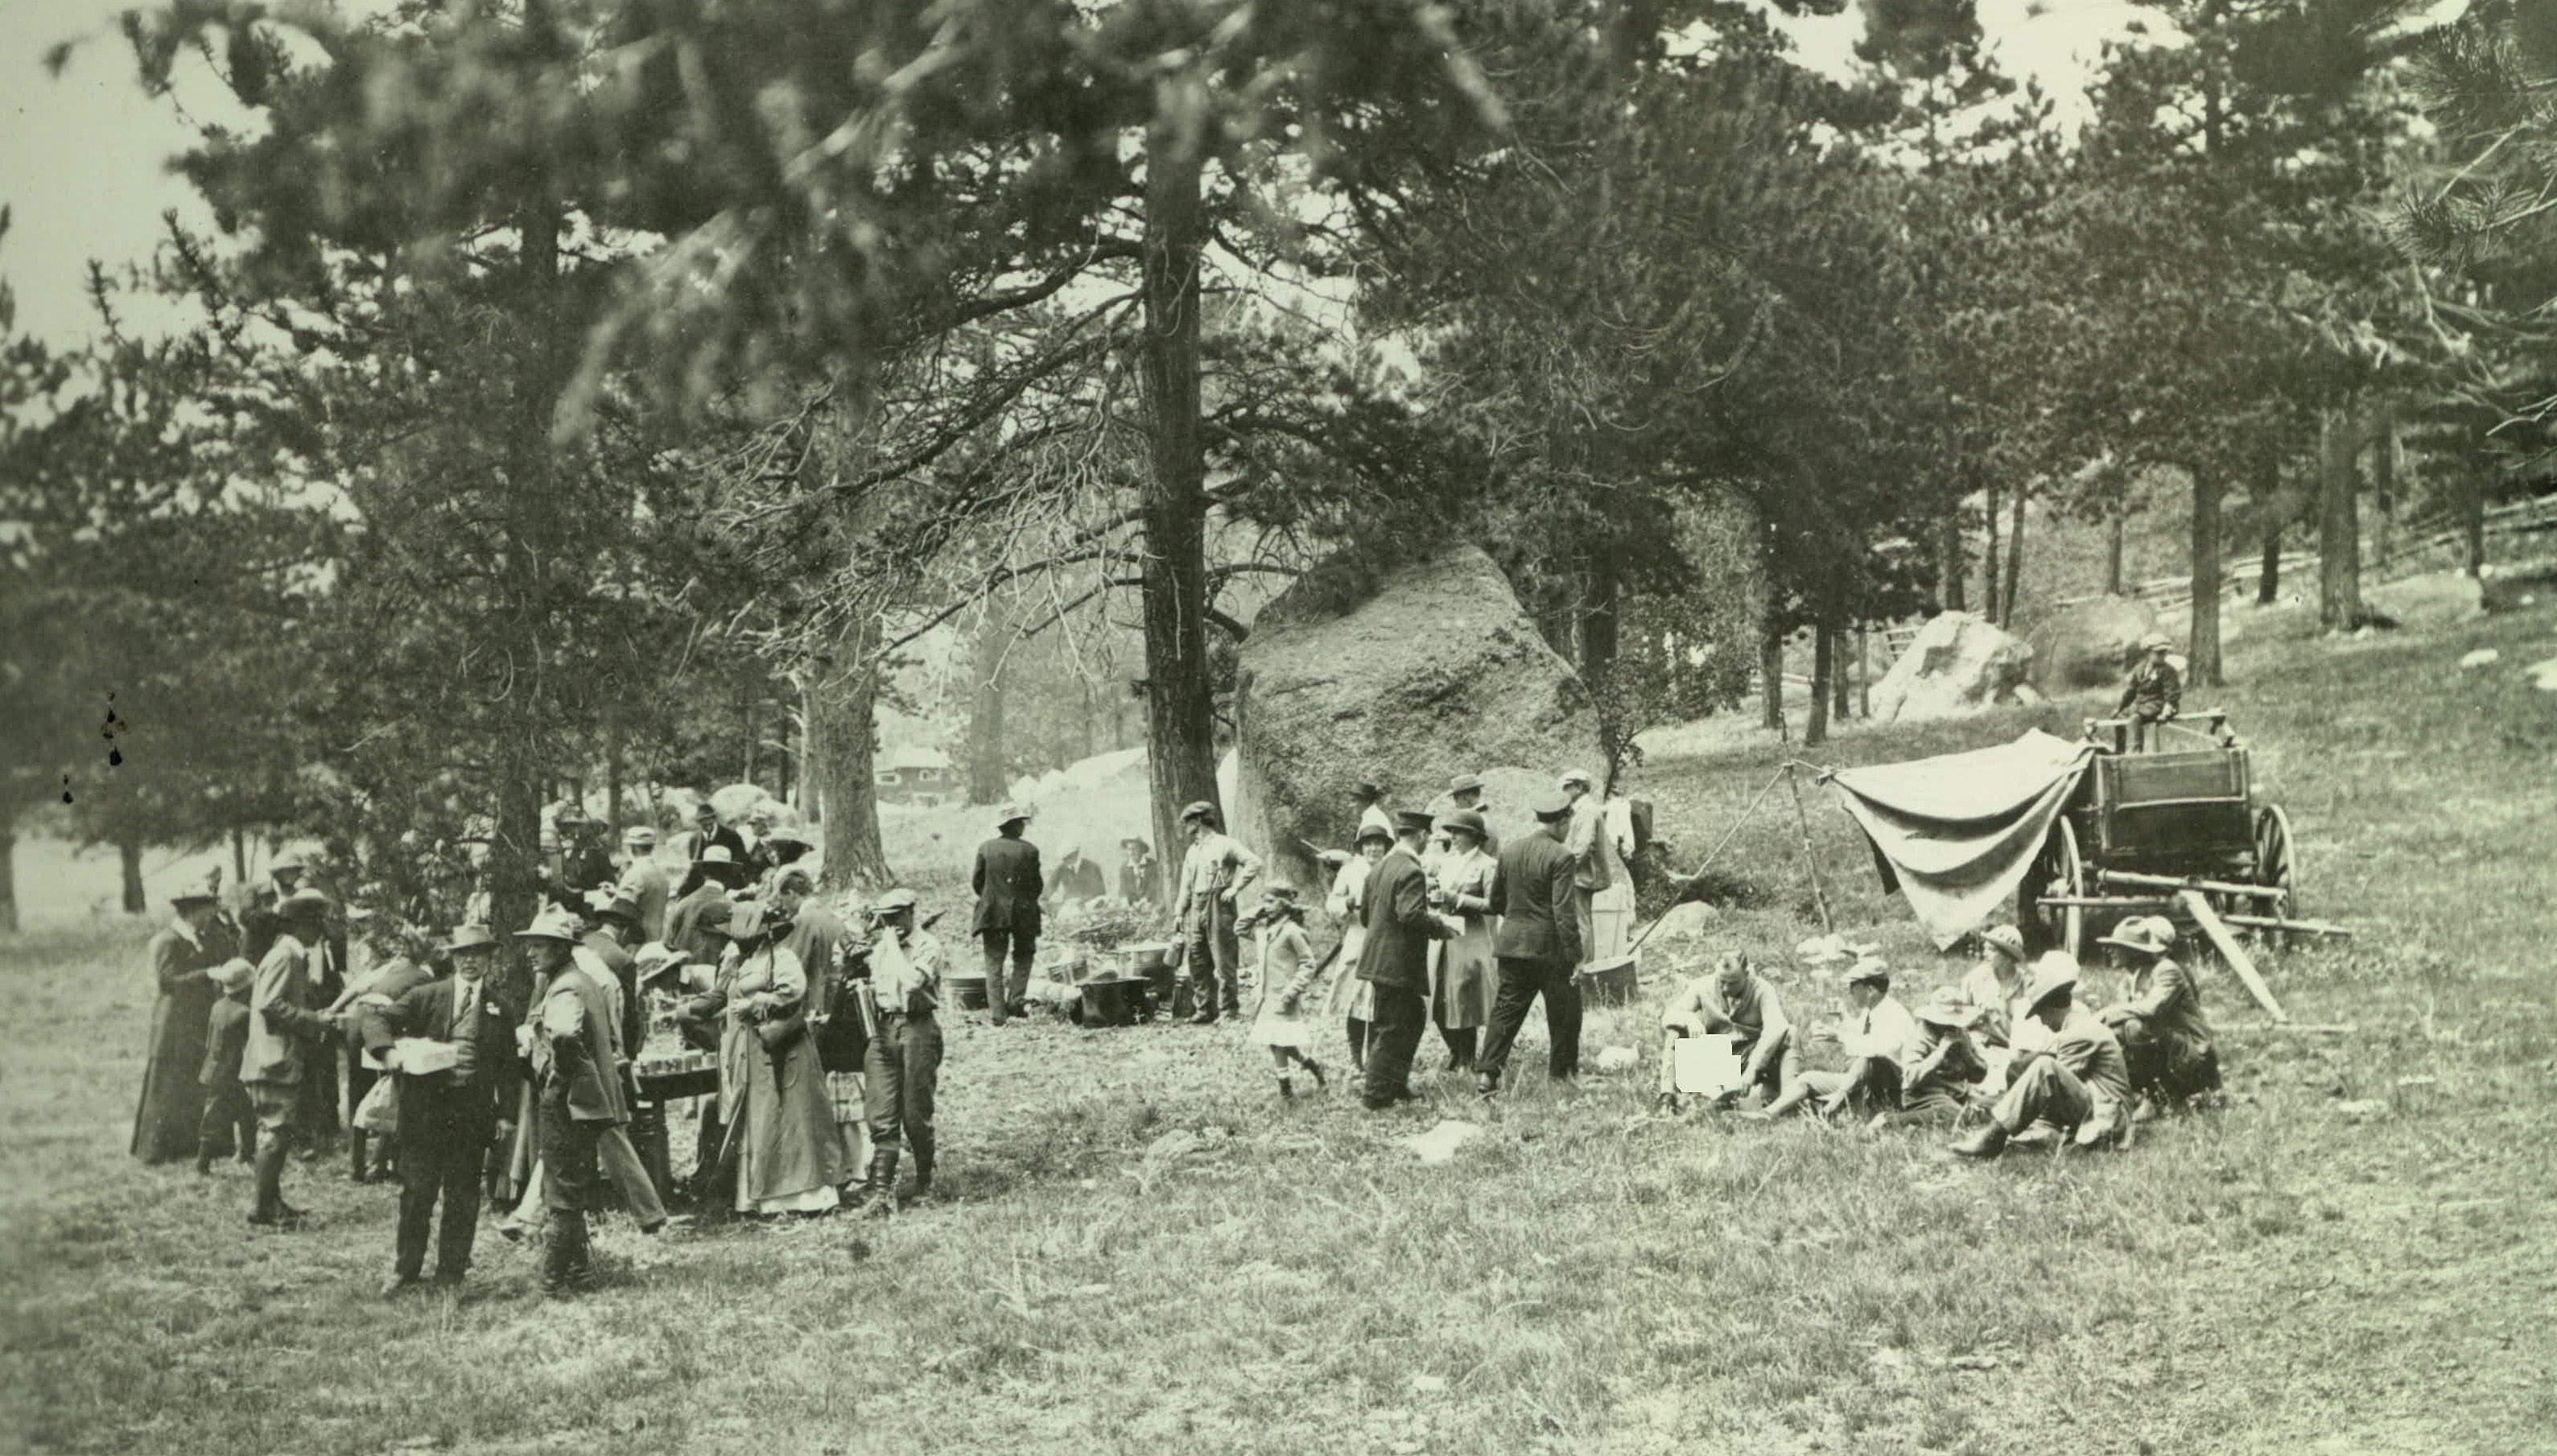 National archives at denver national archives dedication of rocky mountain national park near fall river lodge september 4 1915 rg 79 records of the national park service accession 8ns 79 94 148 malvernweather Gallery